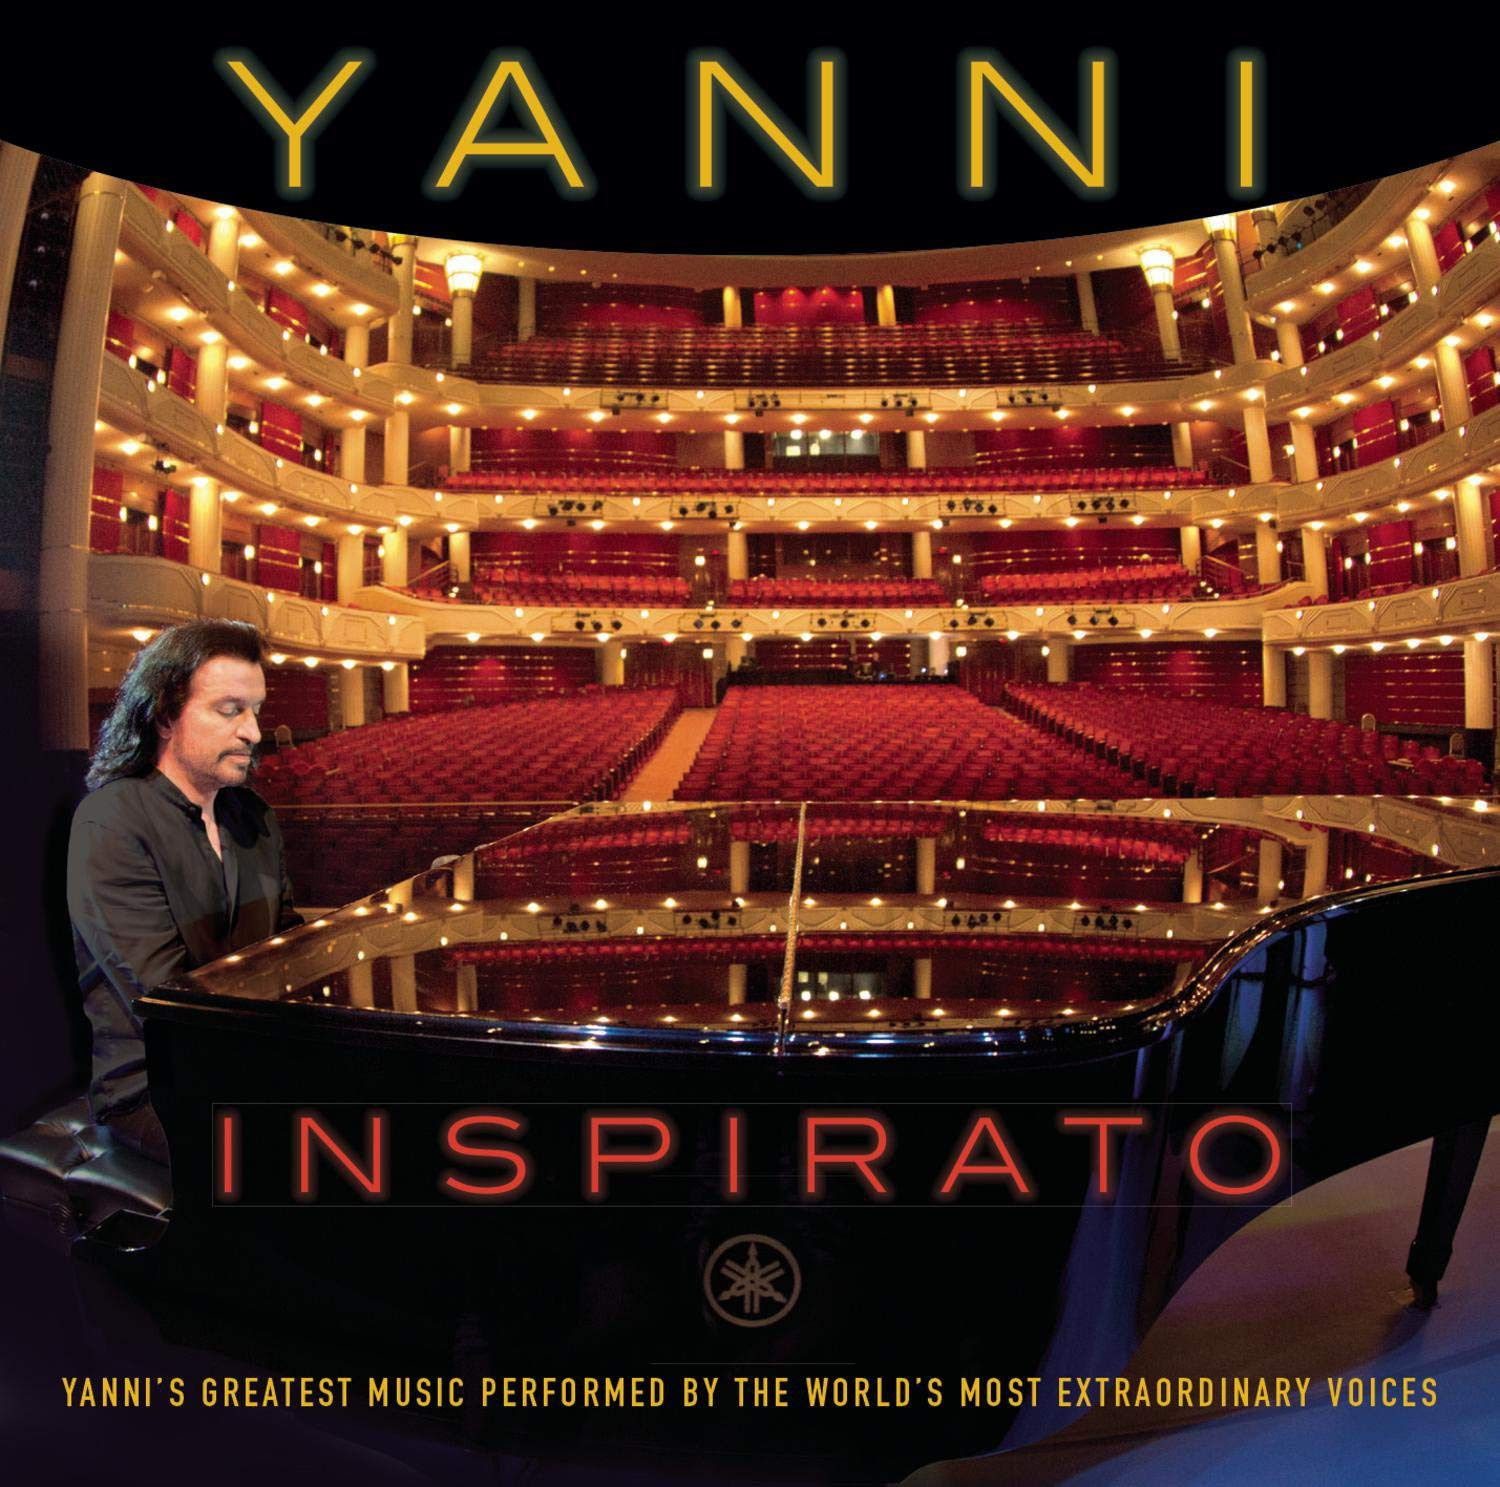 Official Yanni and Yanni Community Website